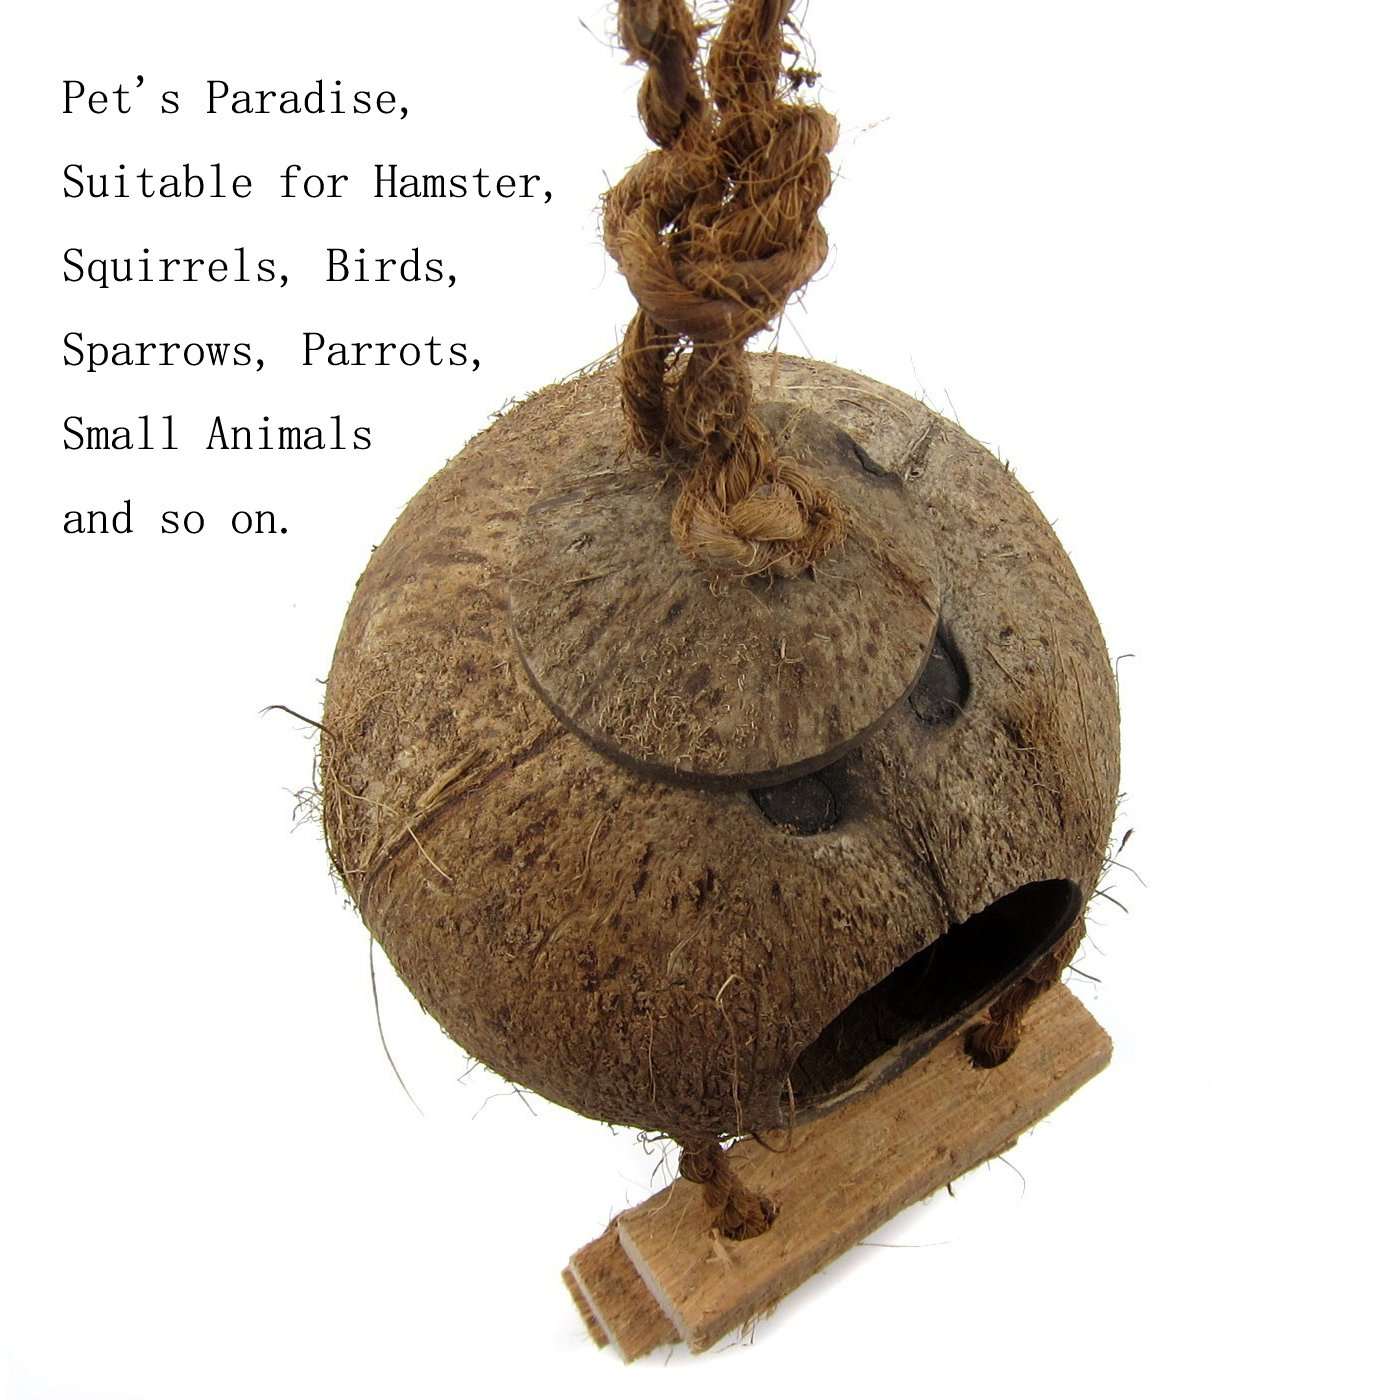 OMEM Coconut Shell Bird House,Hamster Cage and Hideouts with Ladder,Bird Cage Toy by OMEM (Image #3)